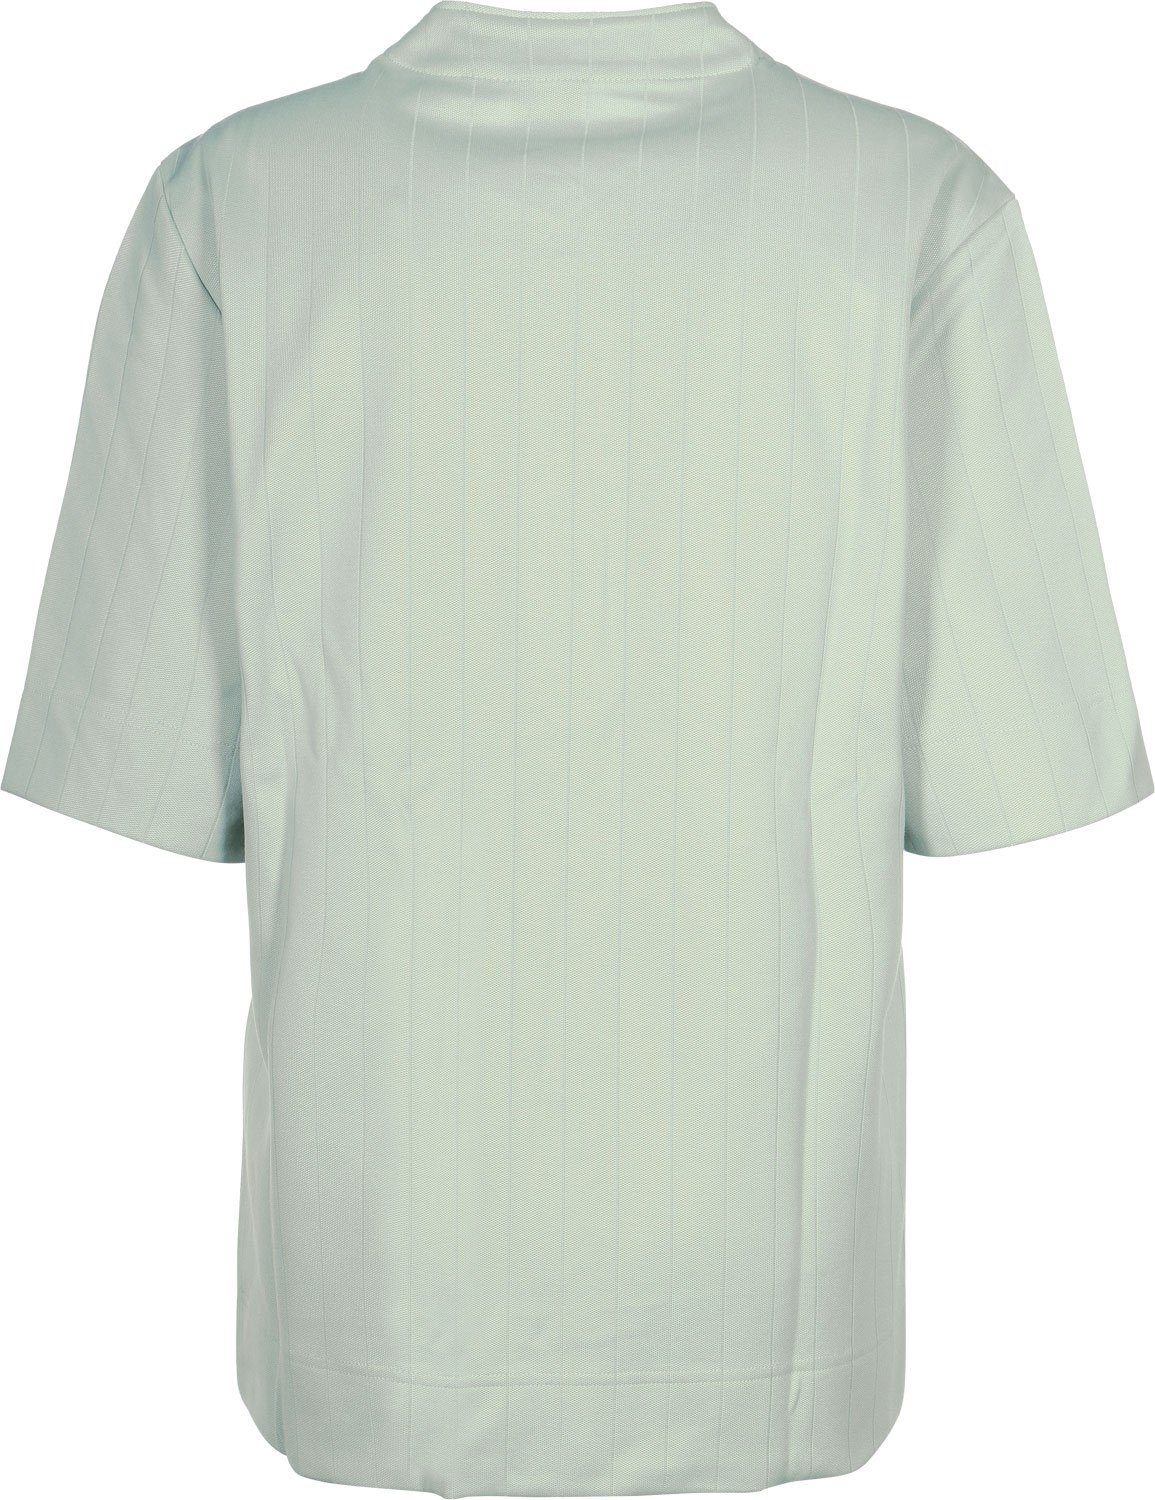 8861bb24 adidas Women's Bh Baseball T-Shirt: Amazon.co.uk: Sports & Outdoors